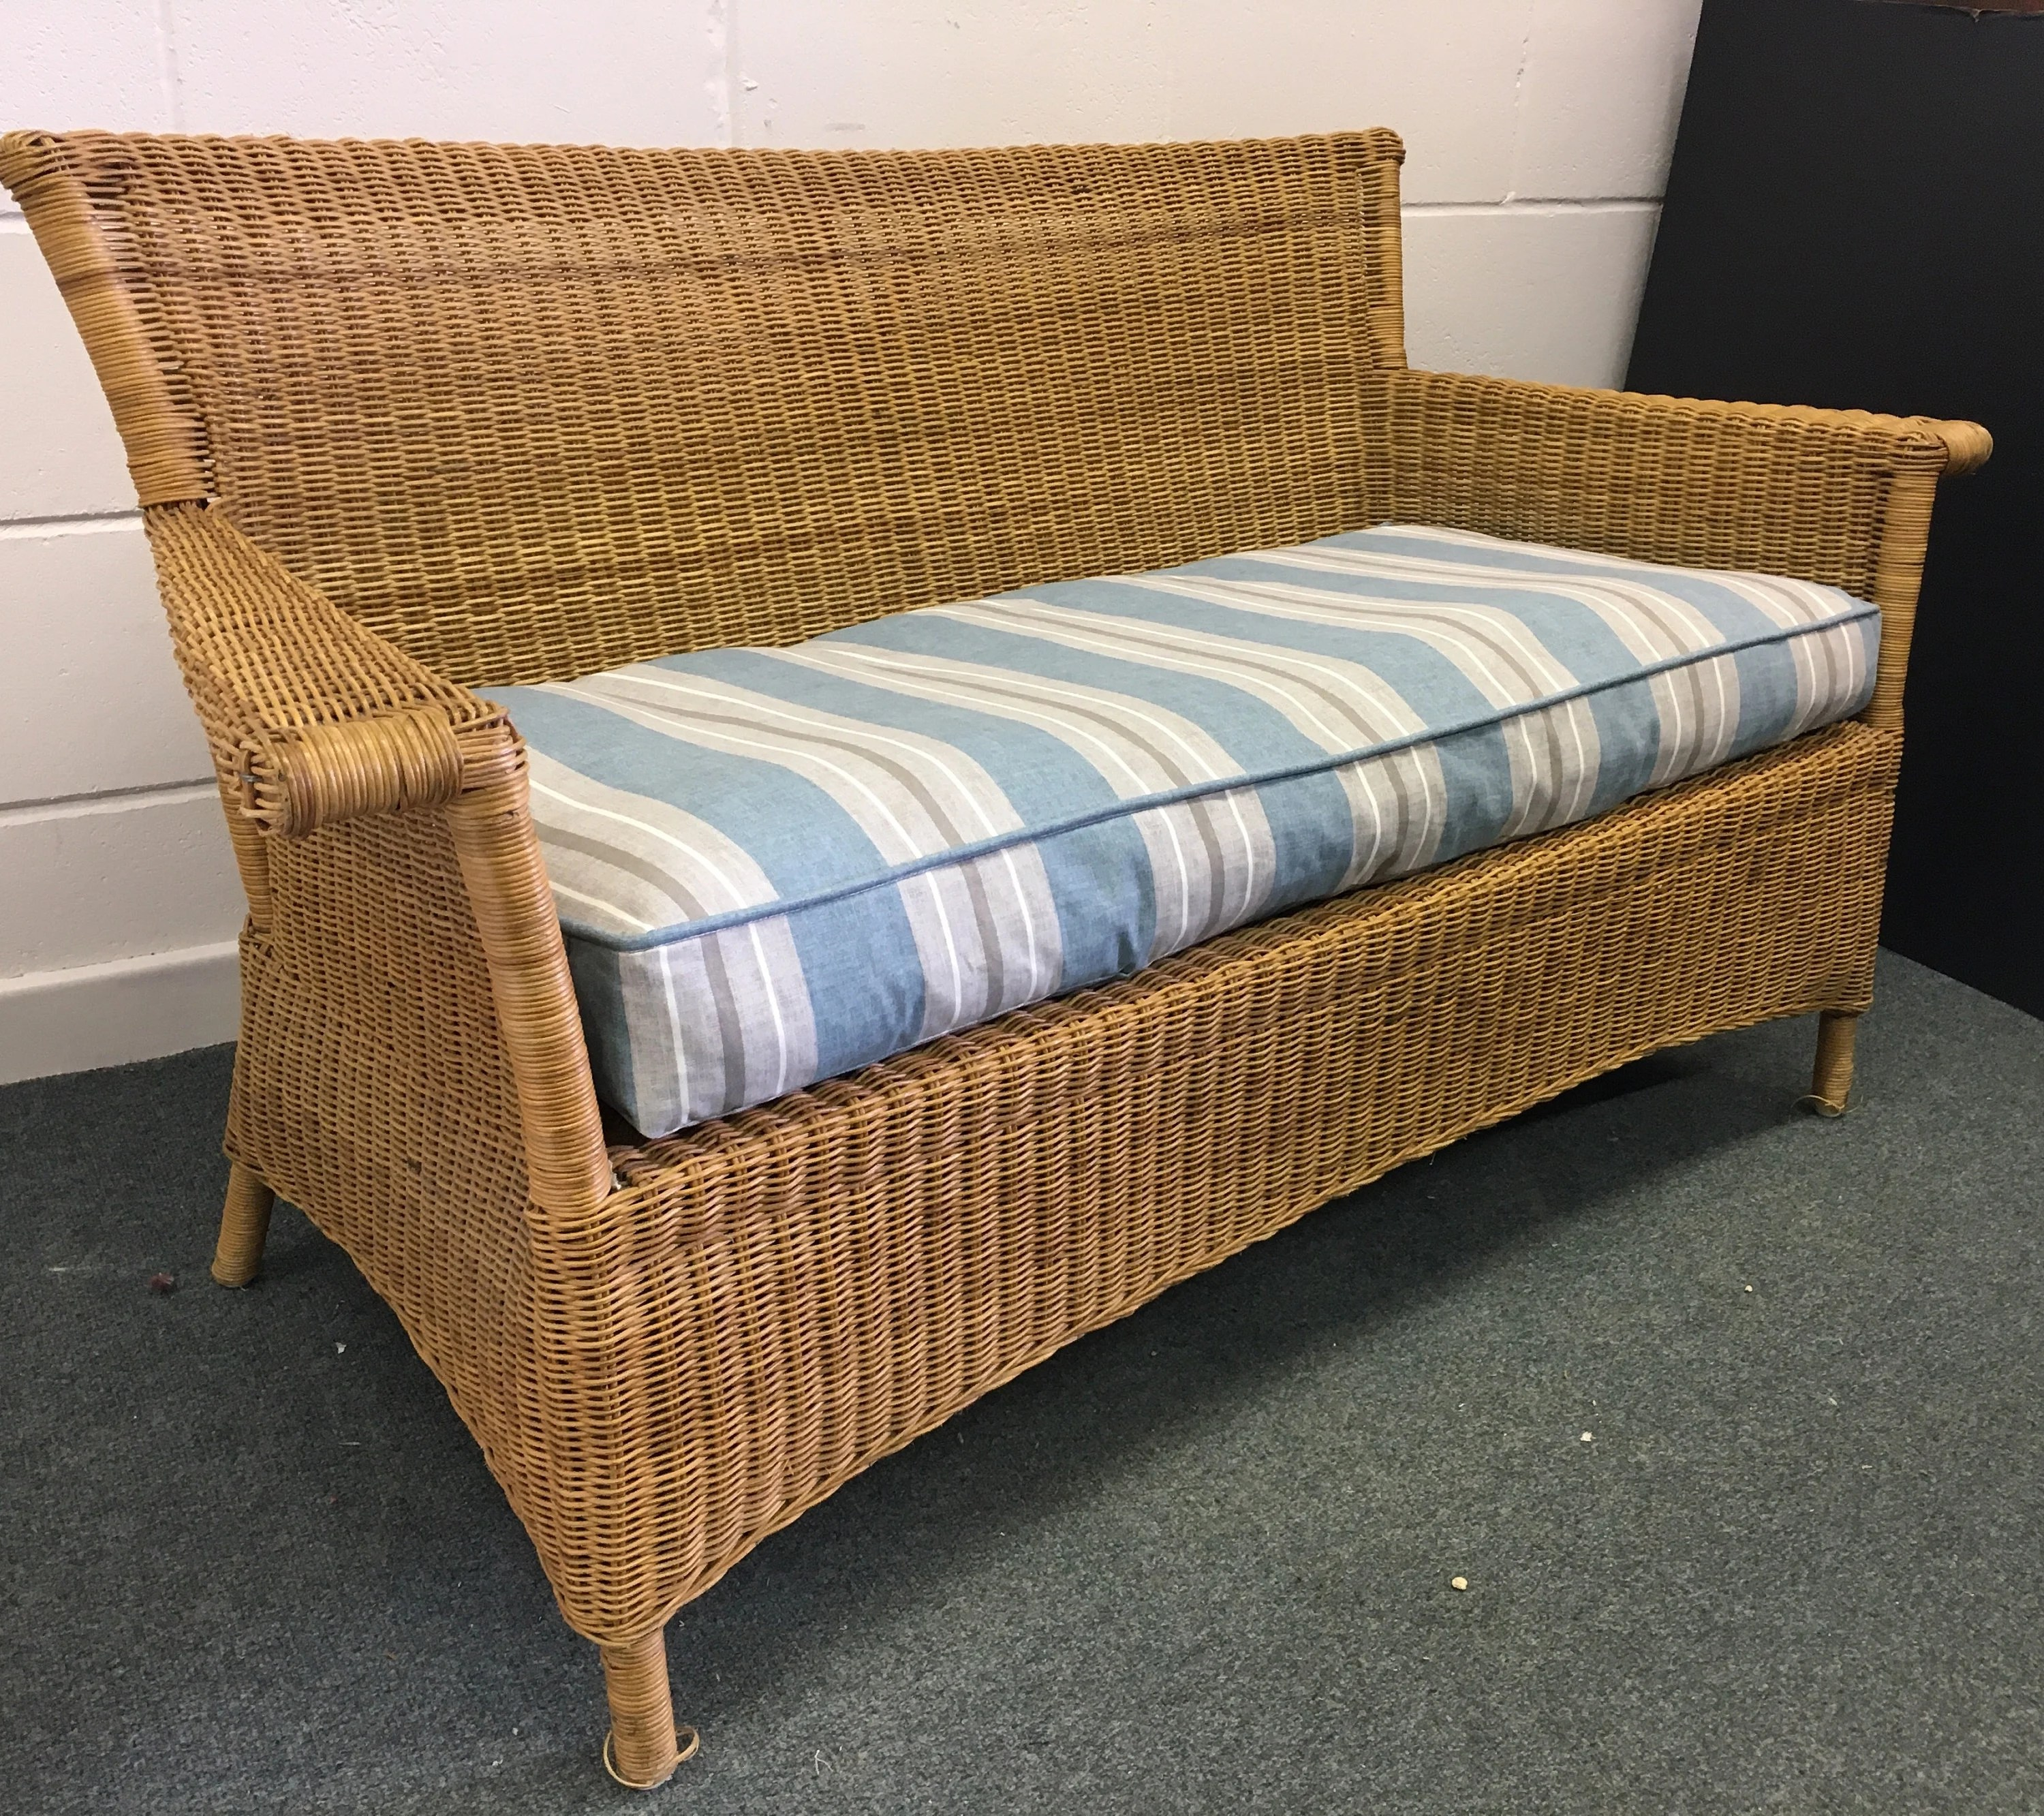 Habitat Sofa Sold Wicker Sofa Vintage Habitat Conservatory Seating Conran Rattan Chair Sold Sold